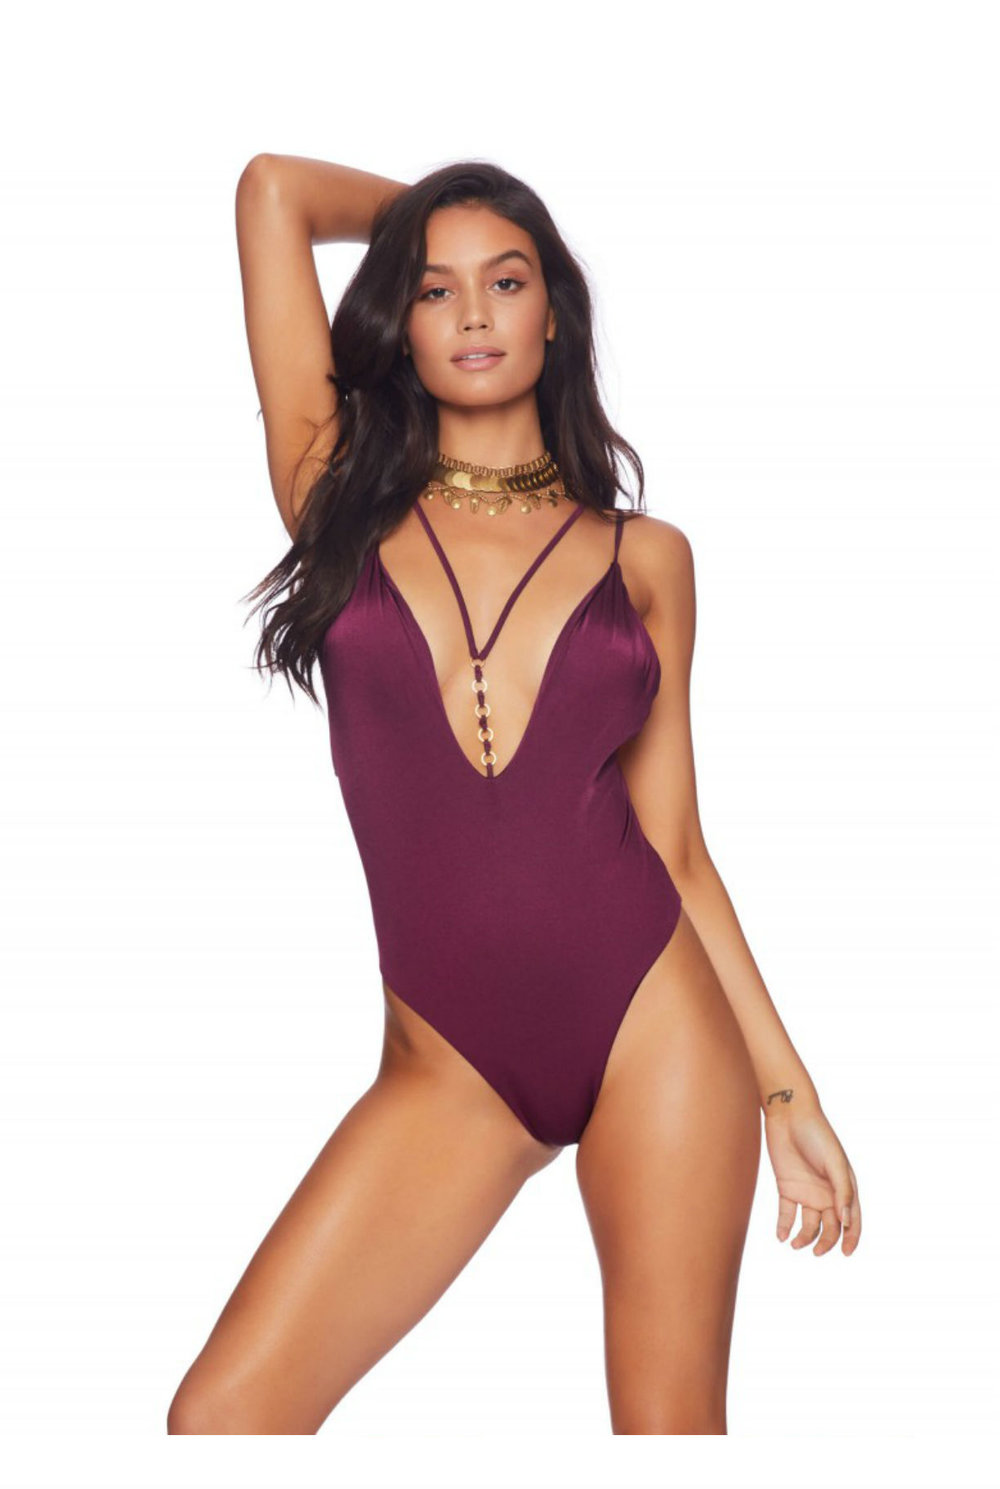 NEW Beach Bunny Ireland One Piece Swimsuit - Plum £150.00